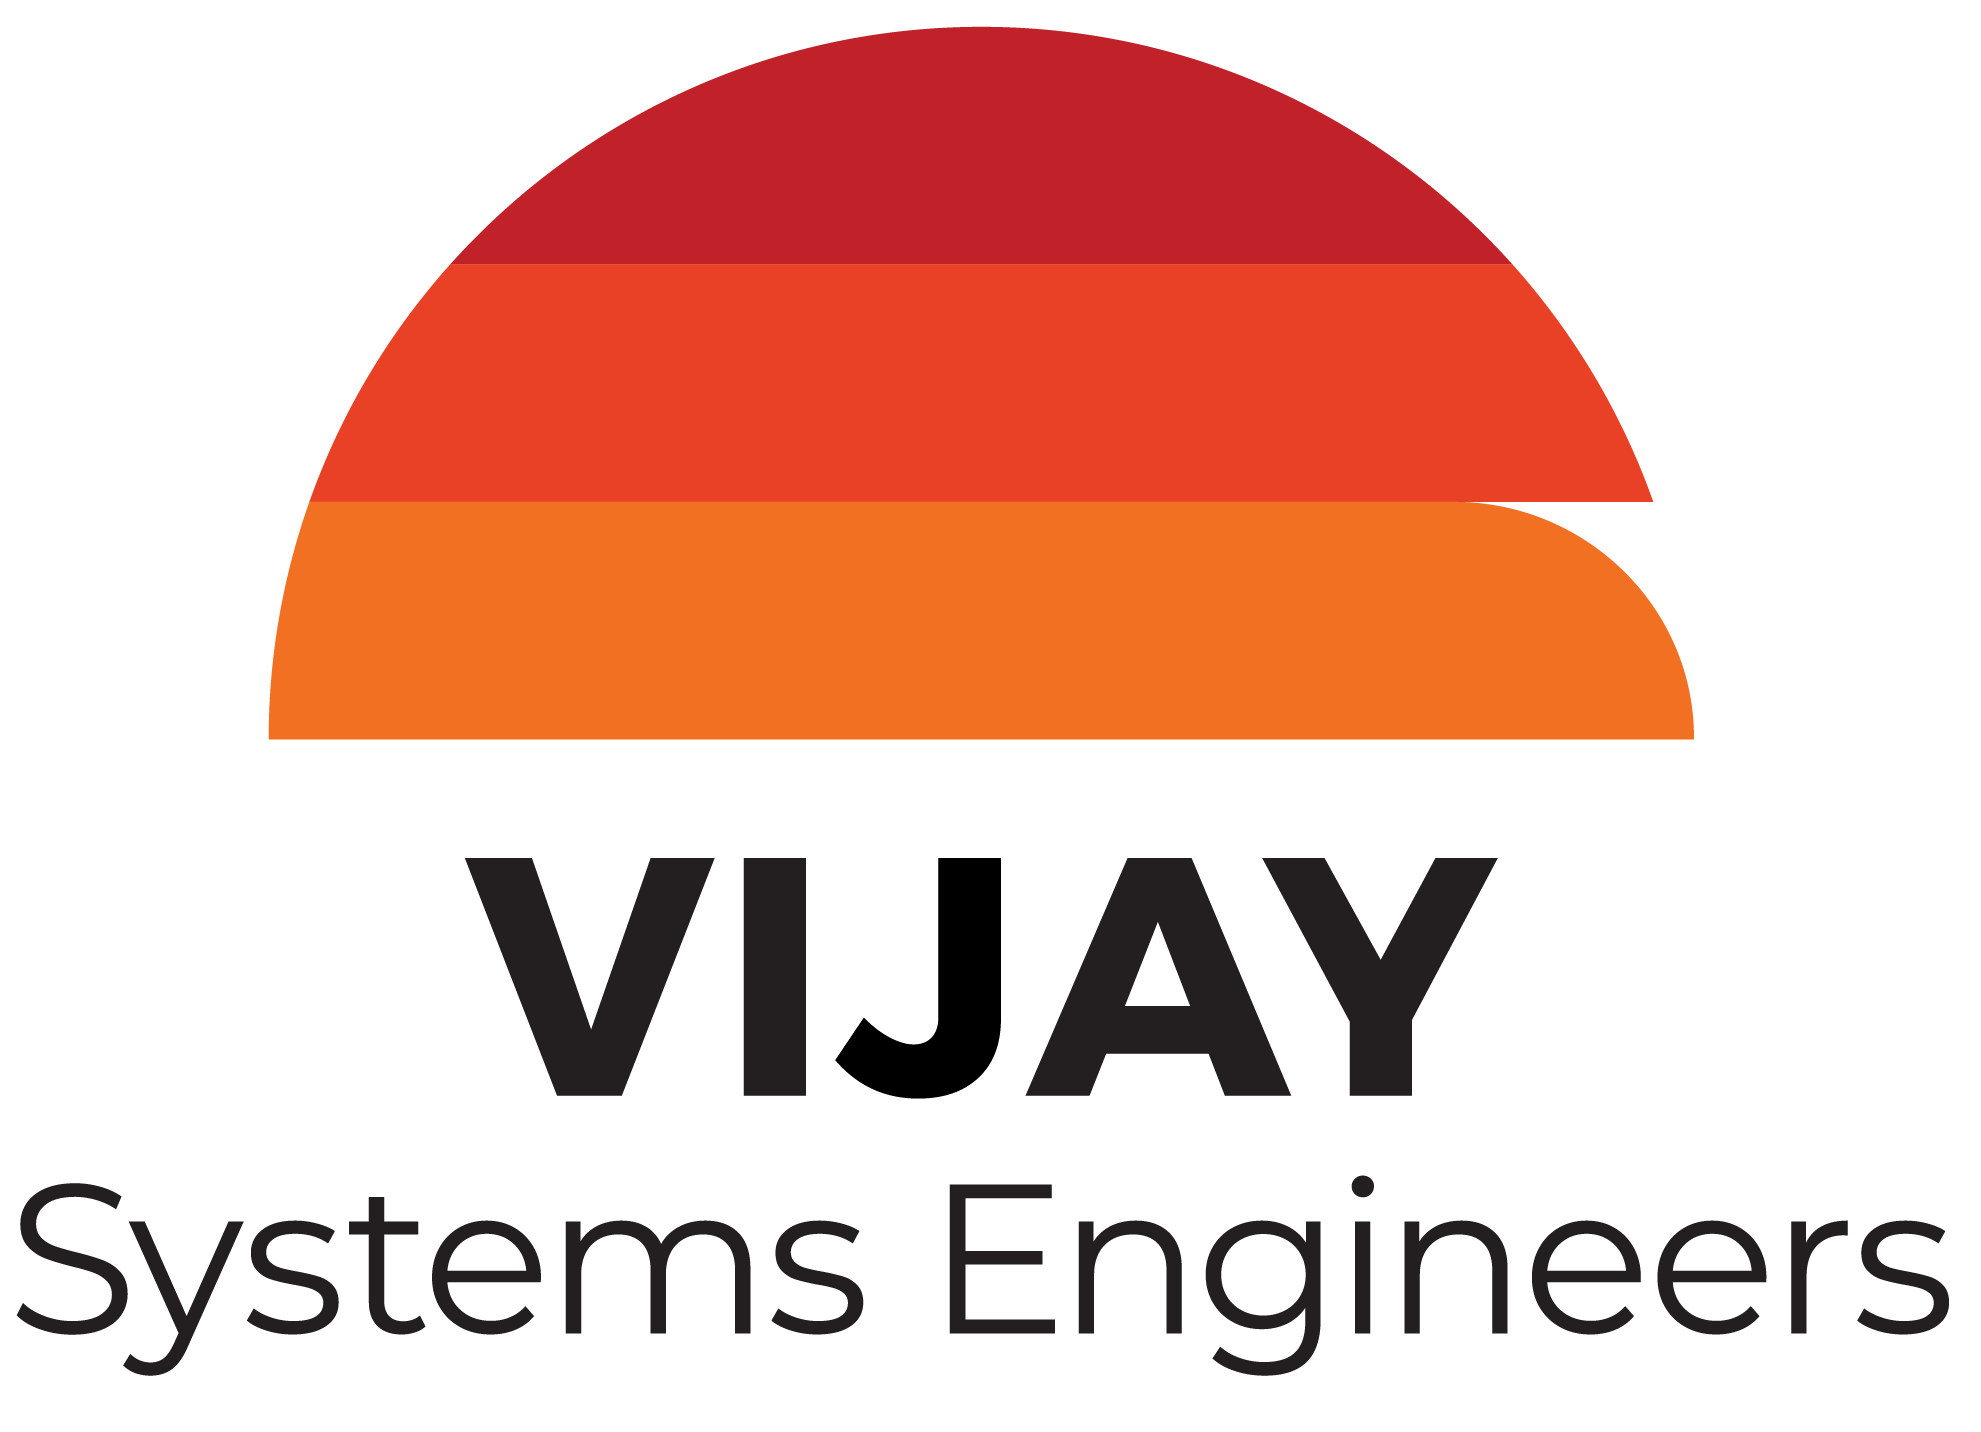 Vijay Systems Engineers Pvt Ltd